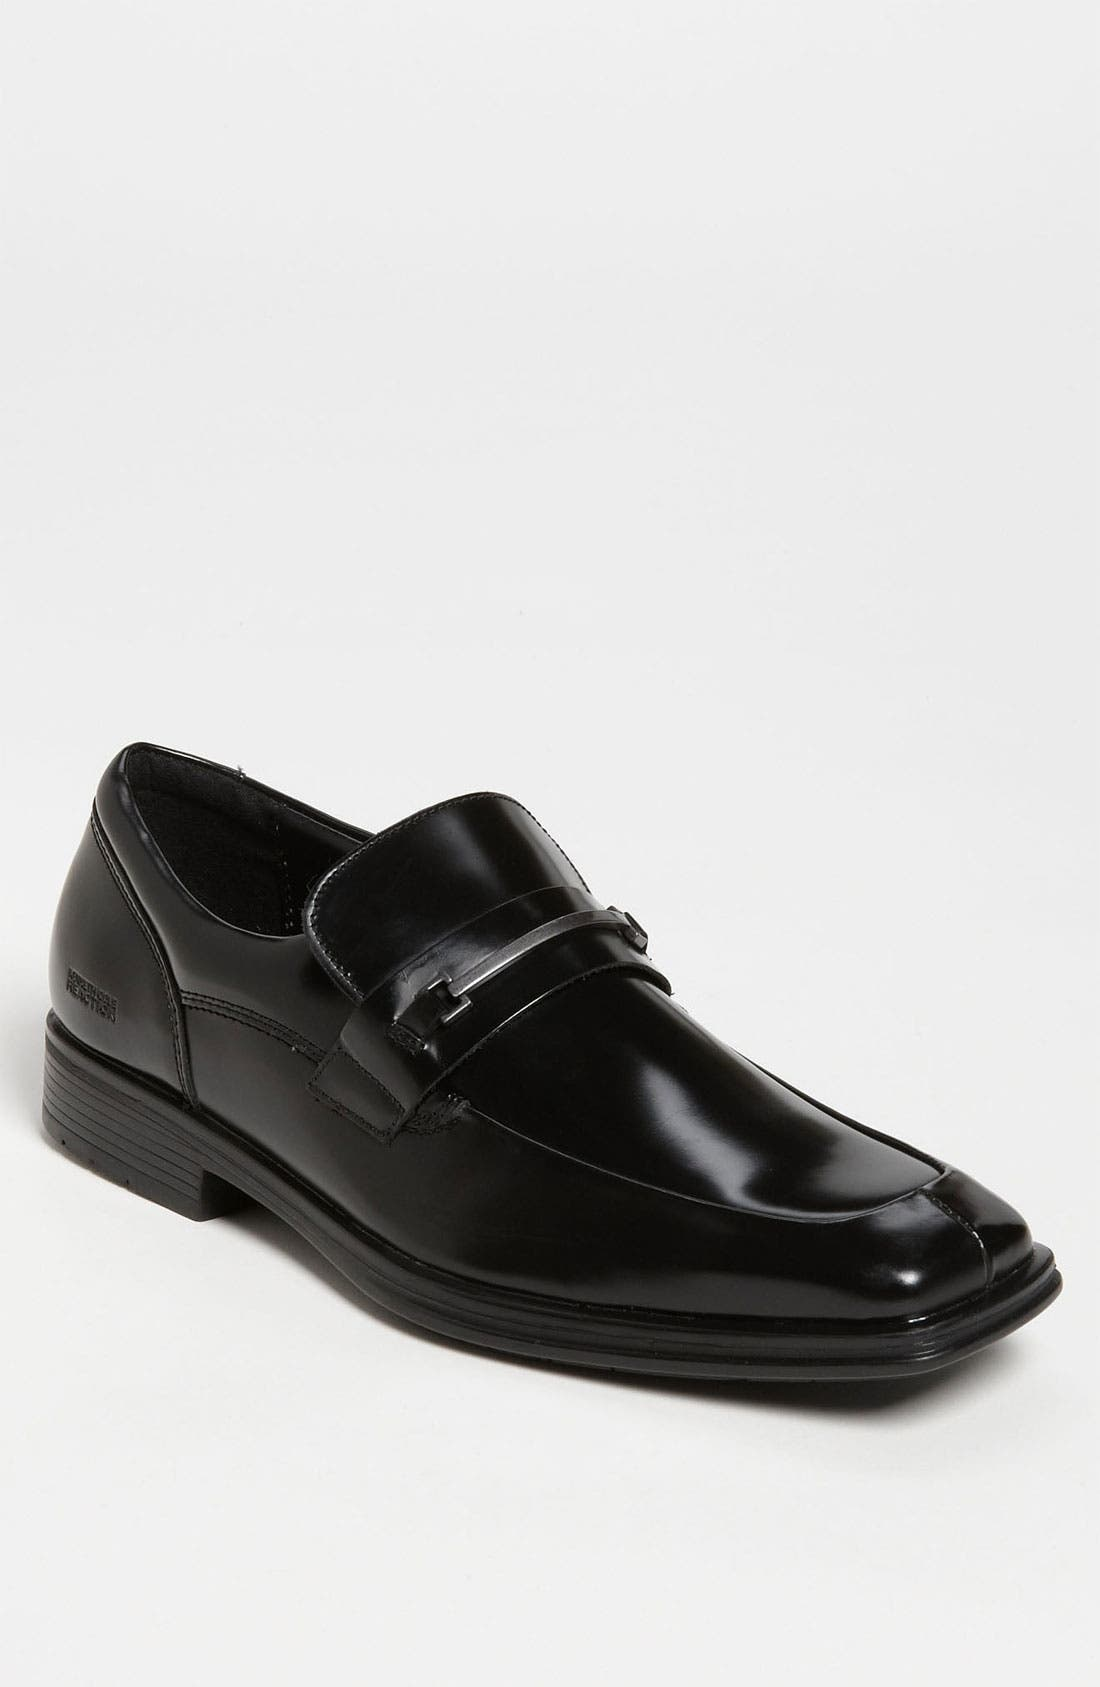 Alternate Image 1 Selected - Kenneth Cole Reaction 'Federal Mint' Bit Loafer (Online Only)